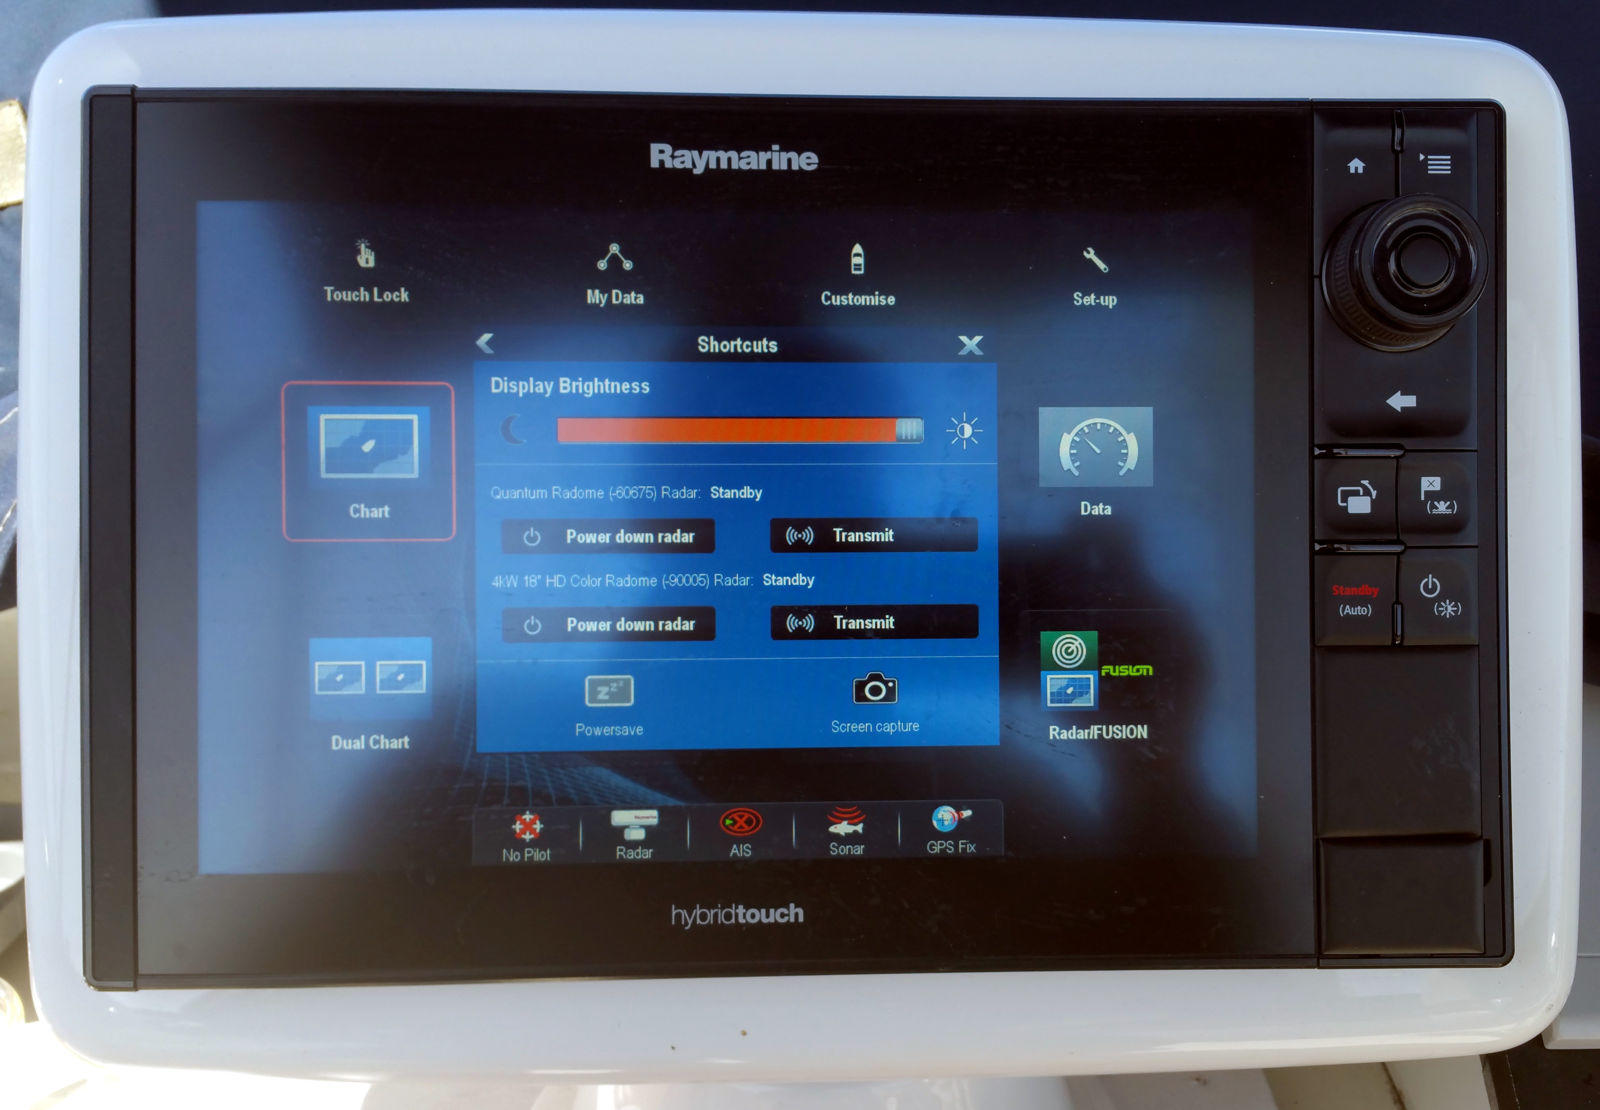 Raymarine_eS128_showing_dual_radars_w_power_down_ability